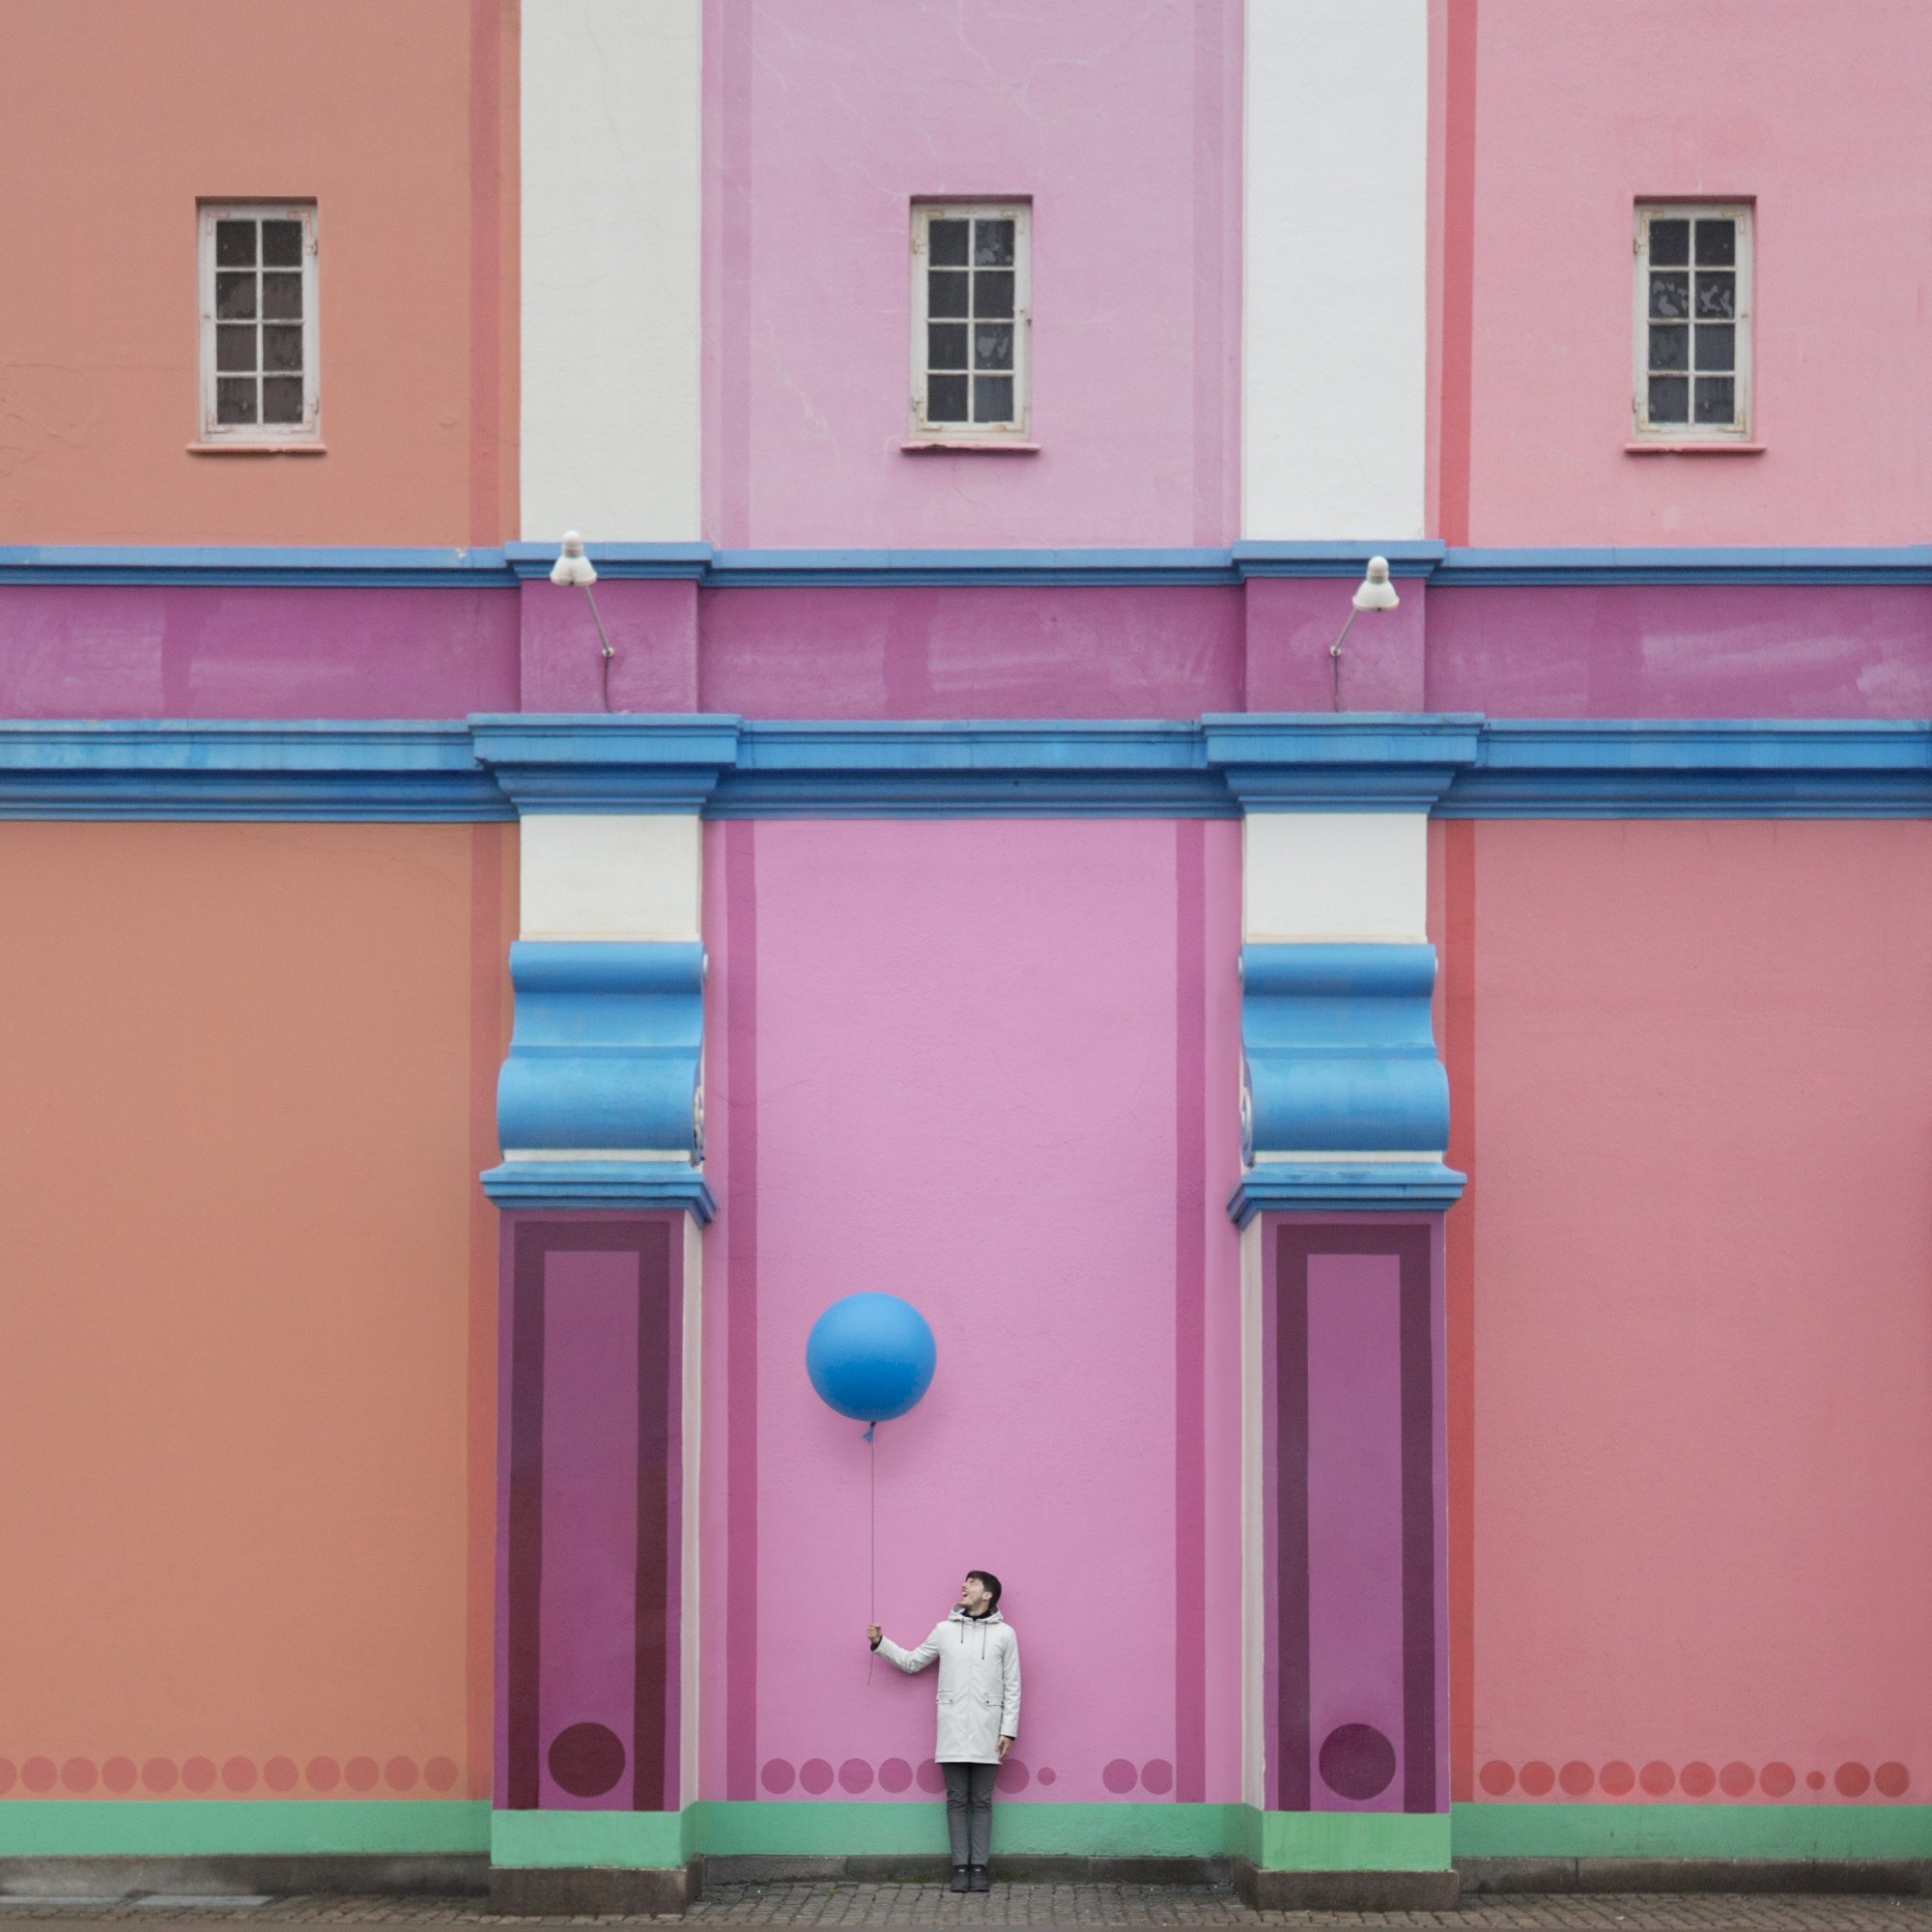 colorful minimalistic playful instagram account pictures by anna devis benet